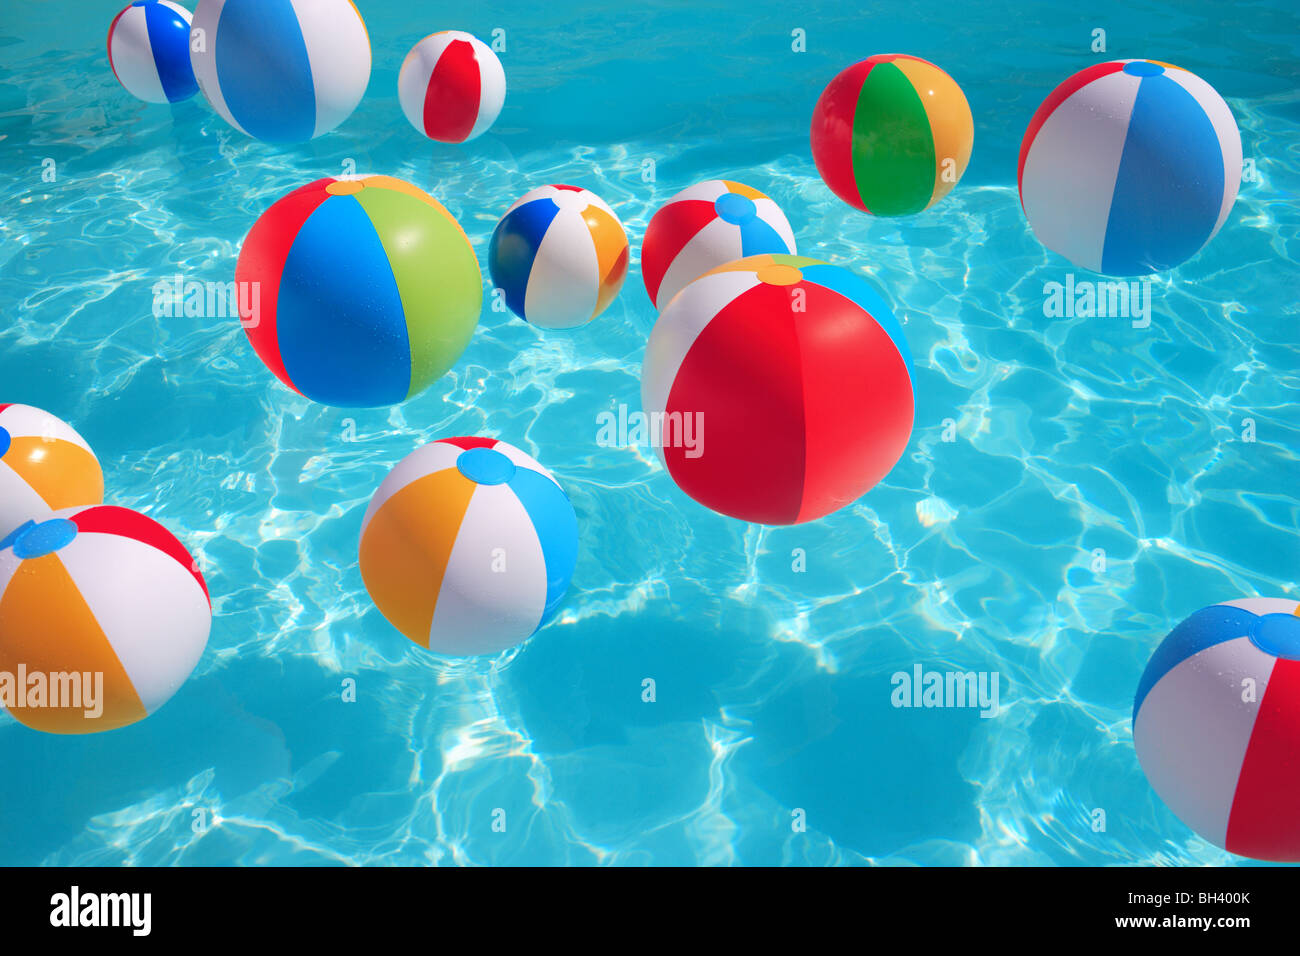 pool water with beach ball. Brightly Colored Inflatable Beach Balls Randomly Floating In A Blue Water Swimming Pool - Stock Image With Ball B